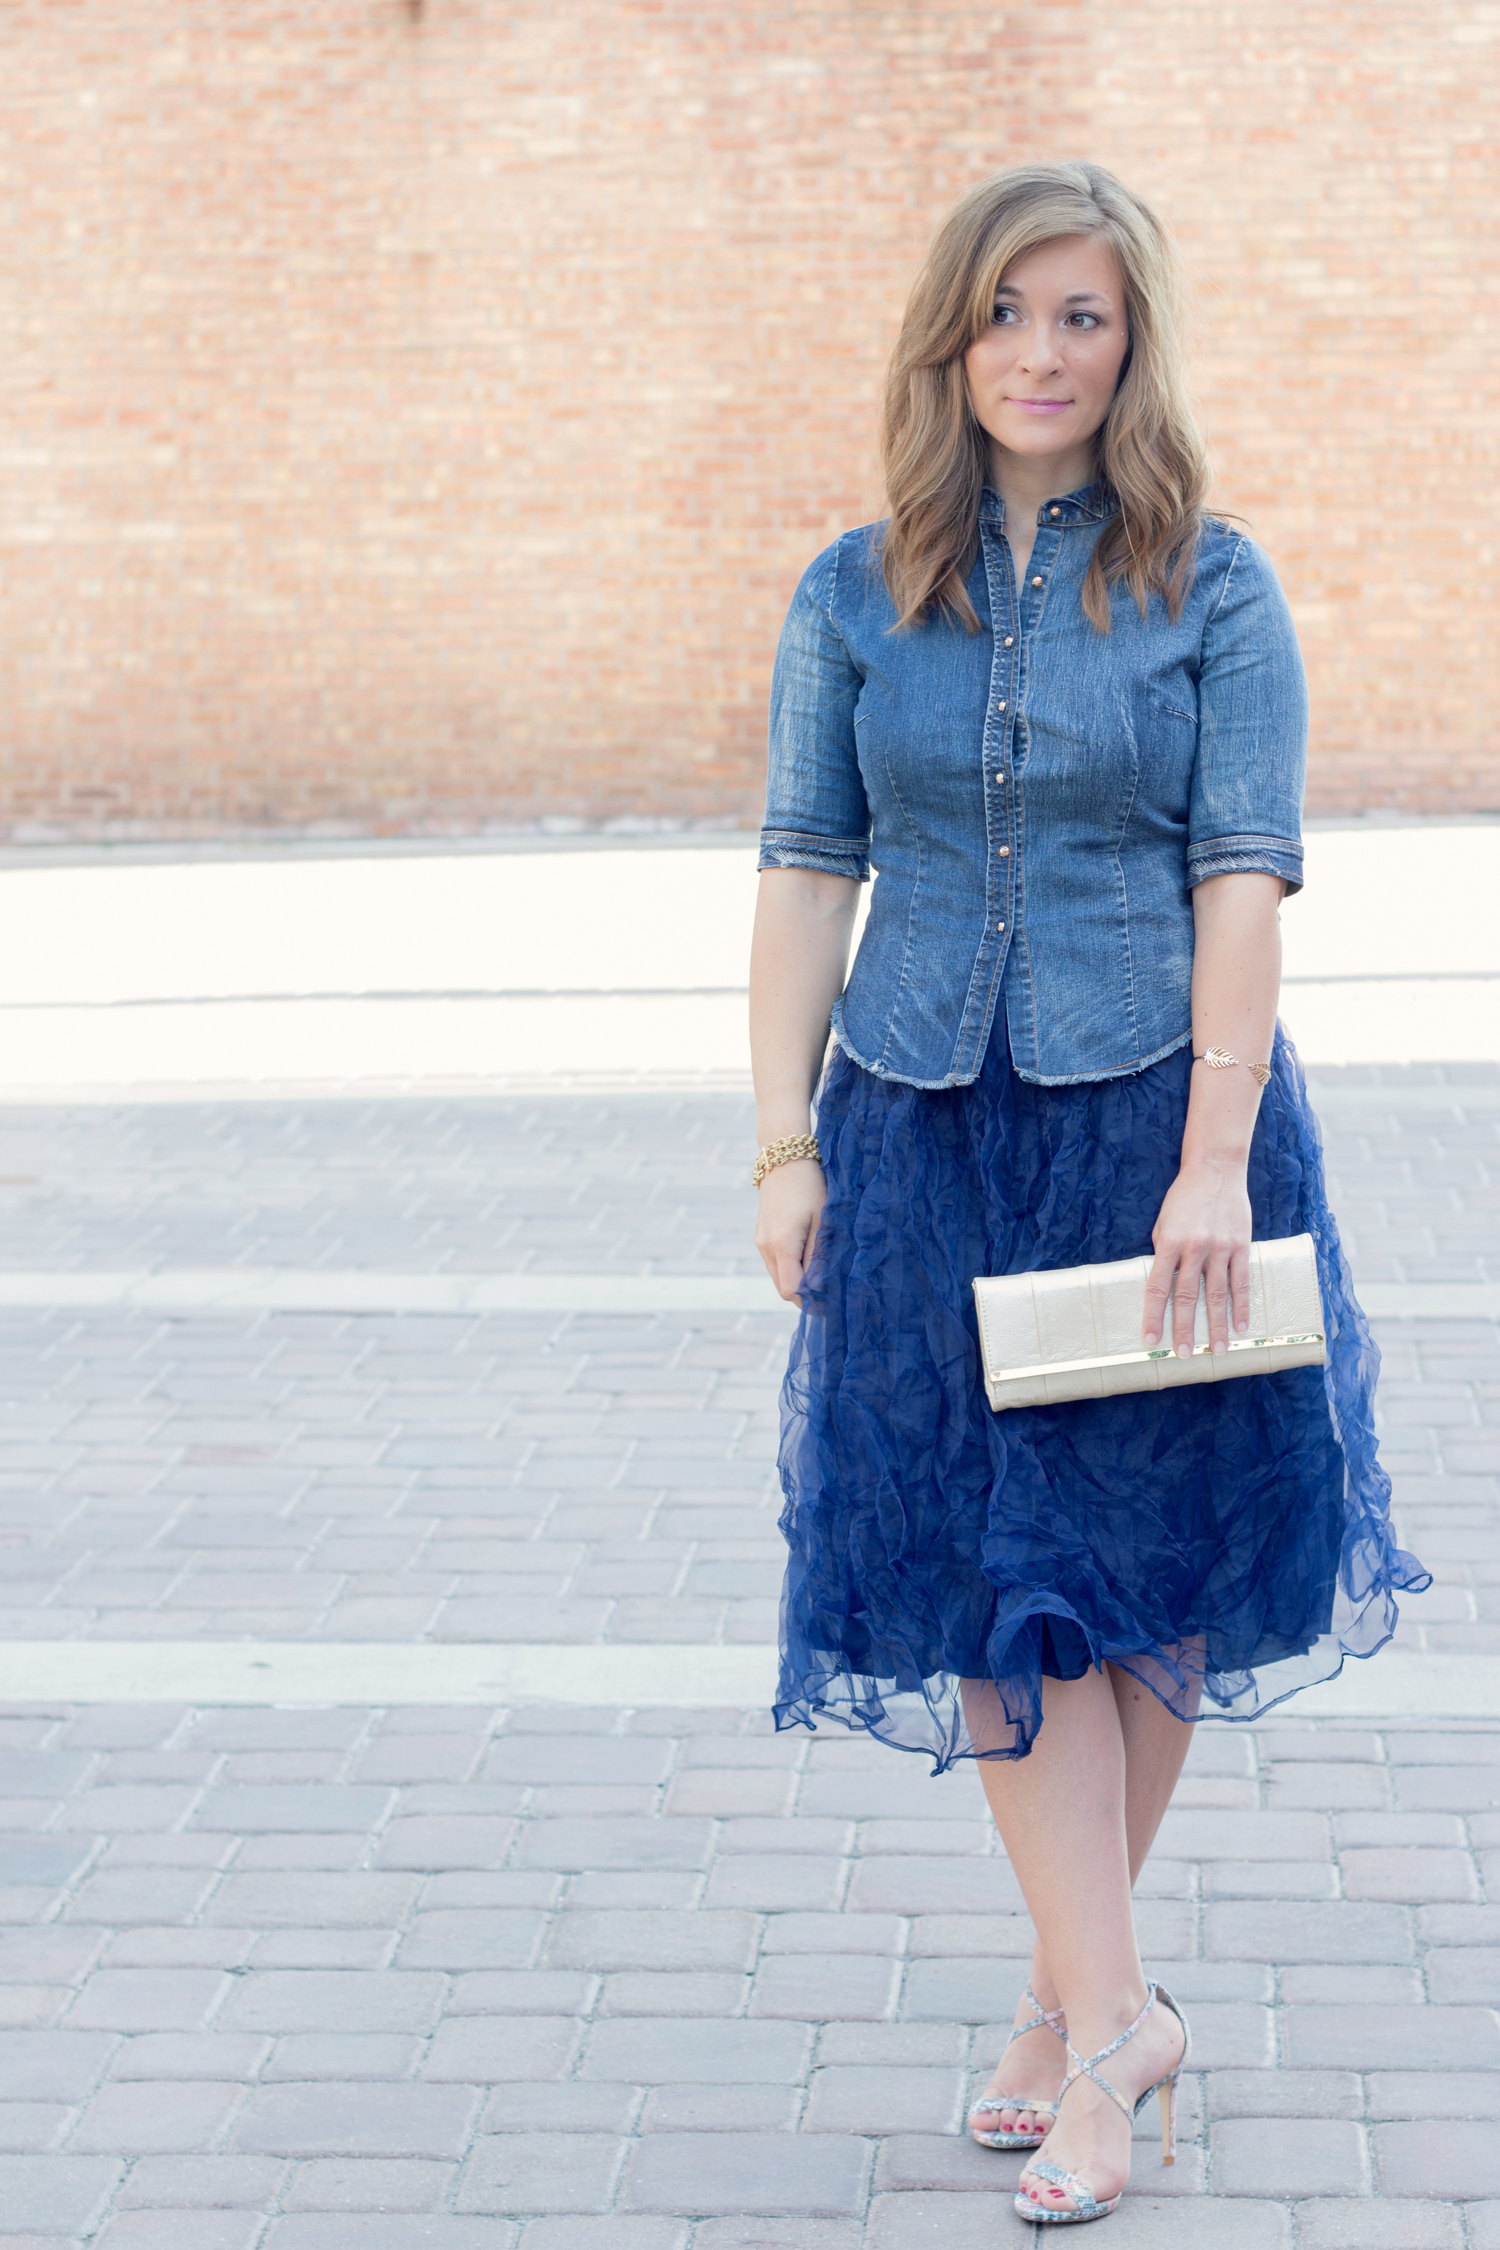 Cute Tulle and Denim Outfit